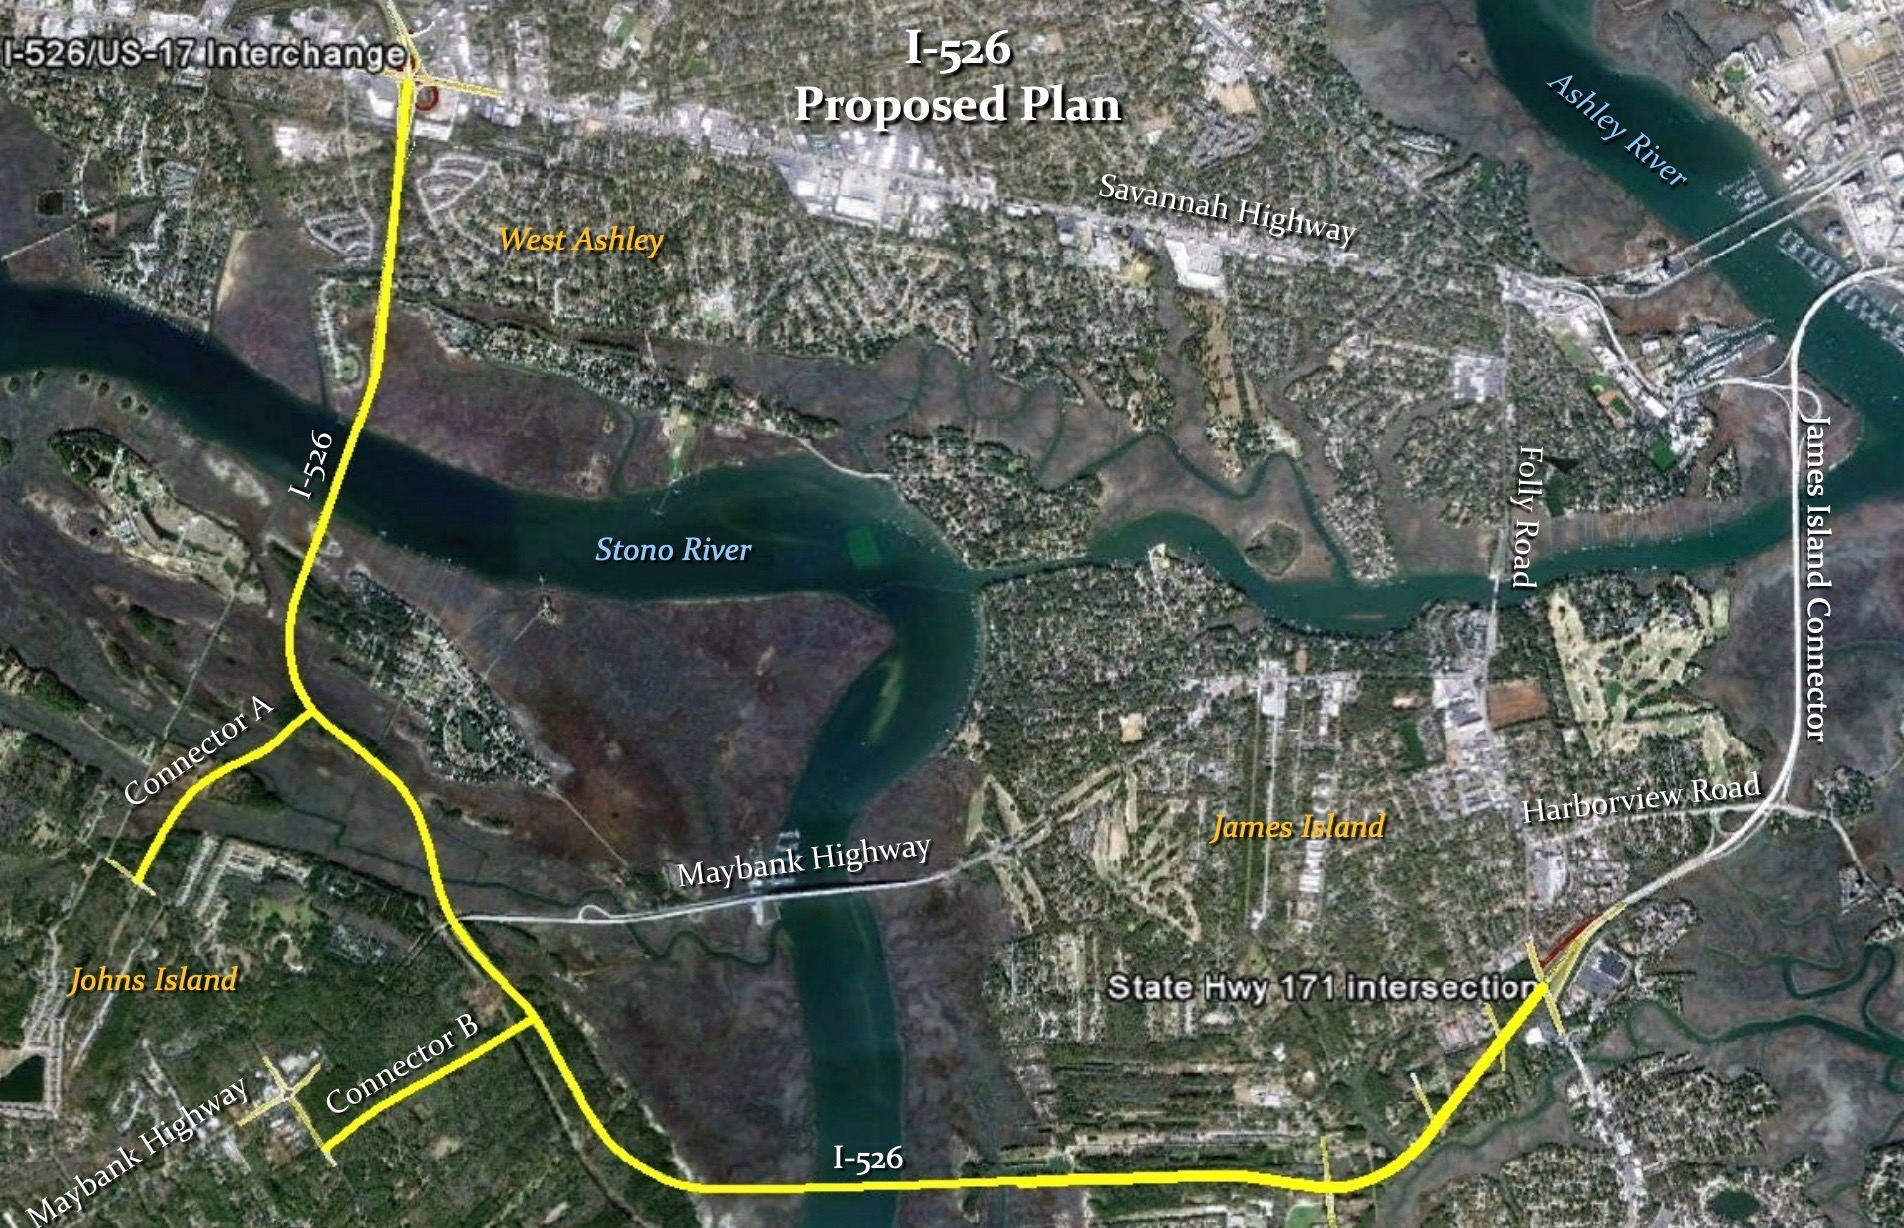 Interstate 526: Still Stuck – FITSNews on charleston county sc map, charleston county tax bill, charleston west virginia county map, charleston county zoning map, charleston gis, charleston county property map, charleston sc visitors map,